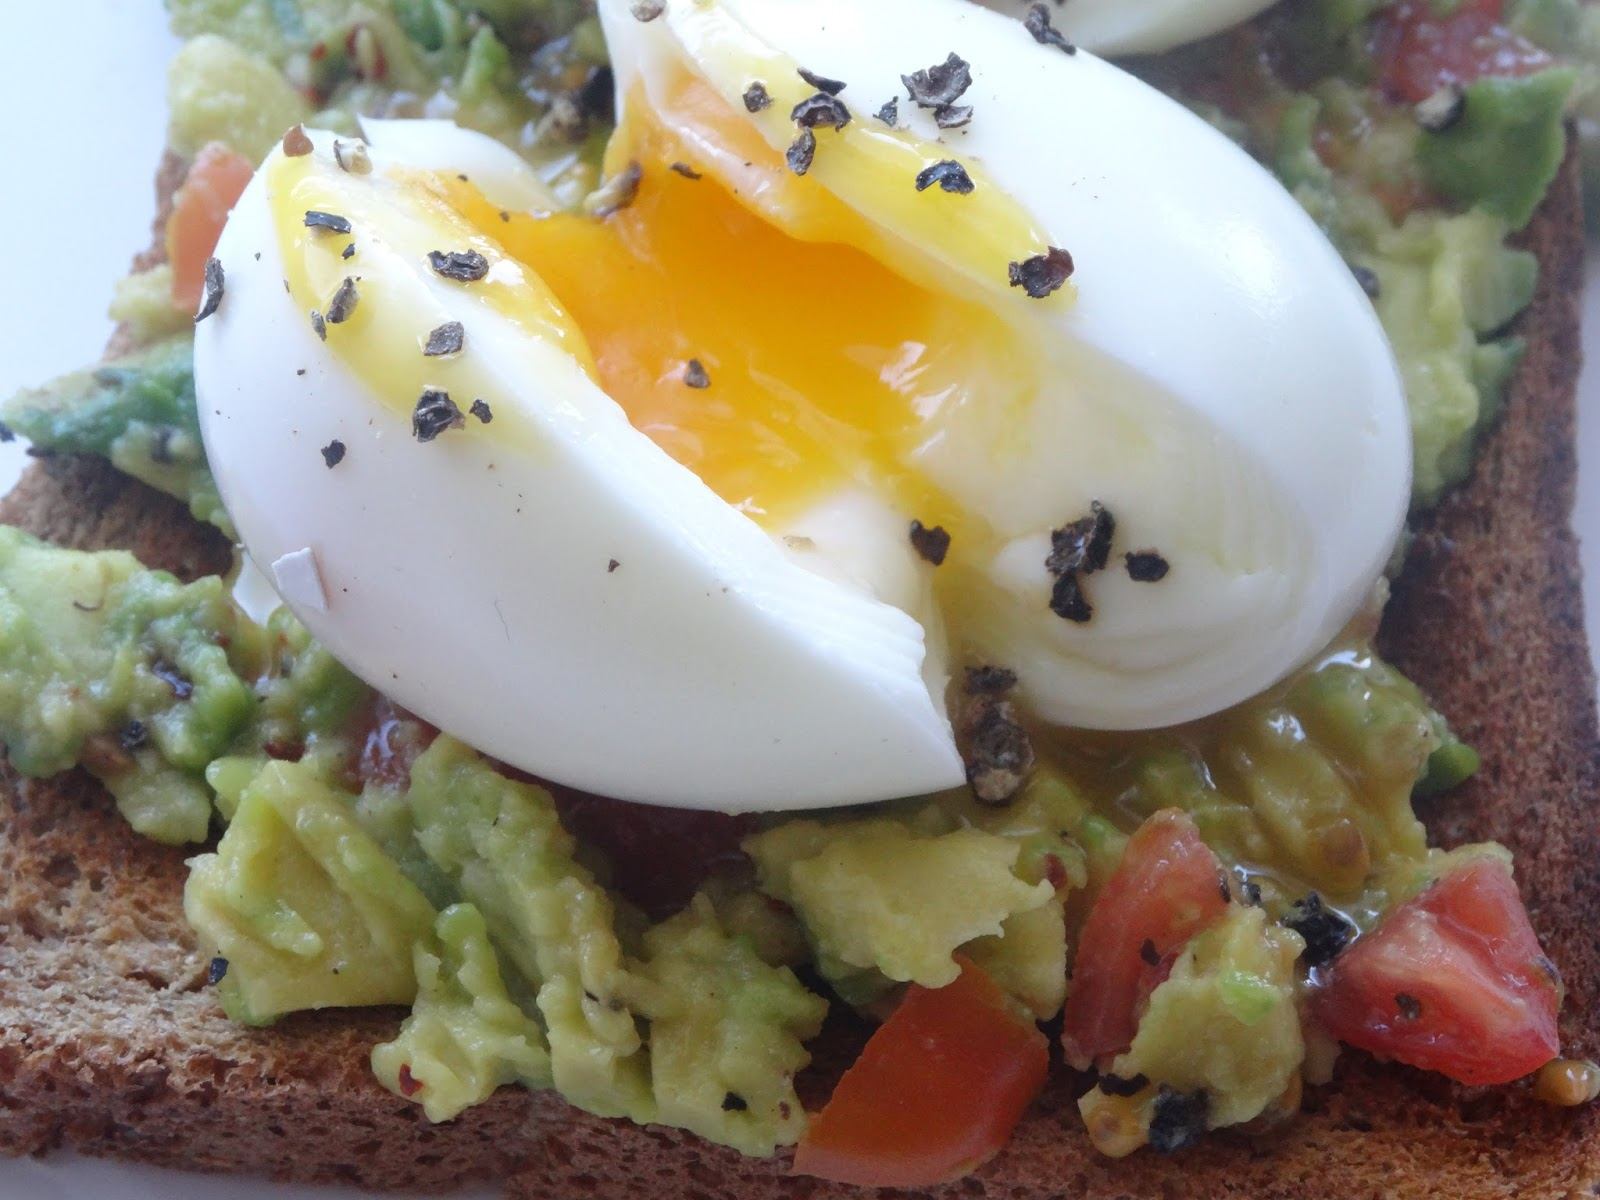 Crushed Avocado & Eggs